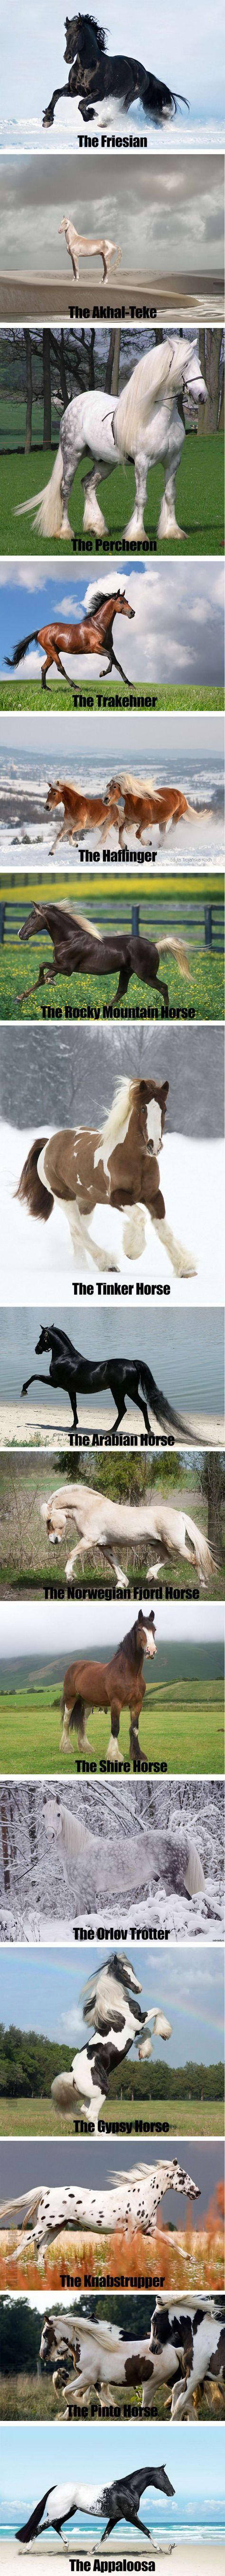 Breathtakingly Beautiful Horses - 9GAG<< Love these breeds! I have an Arabian